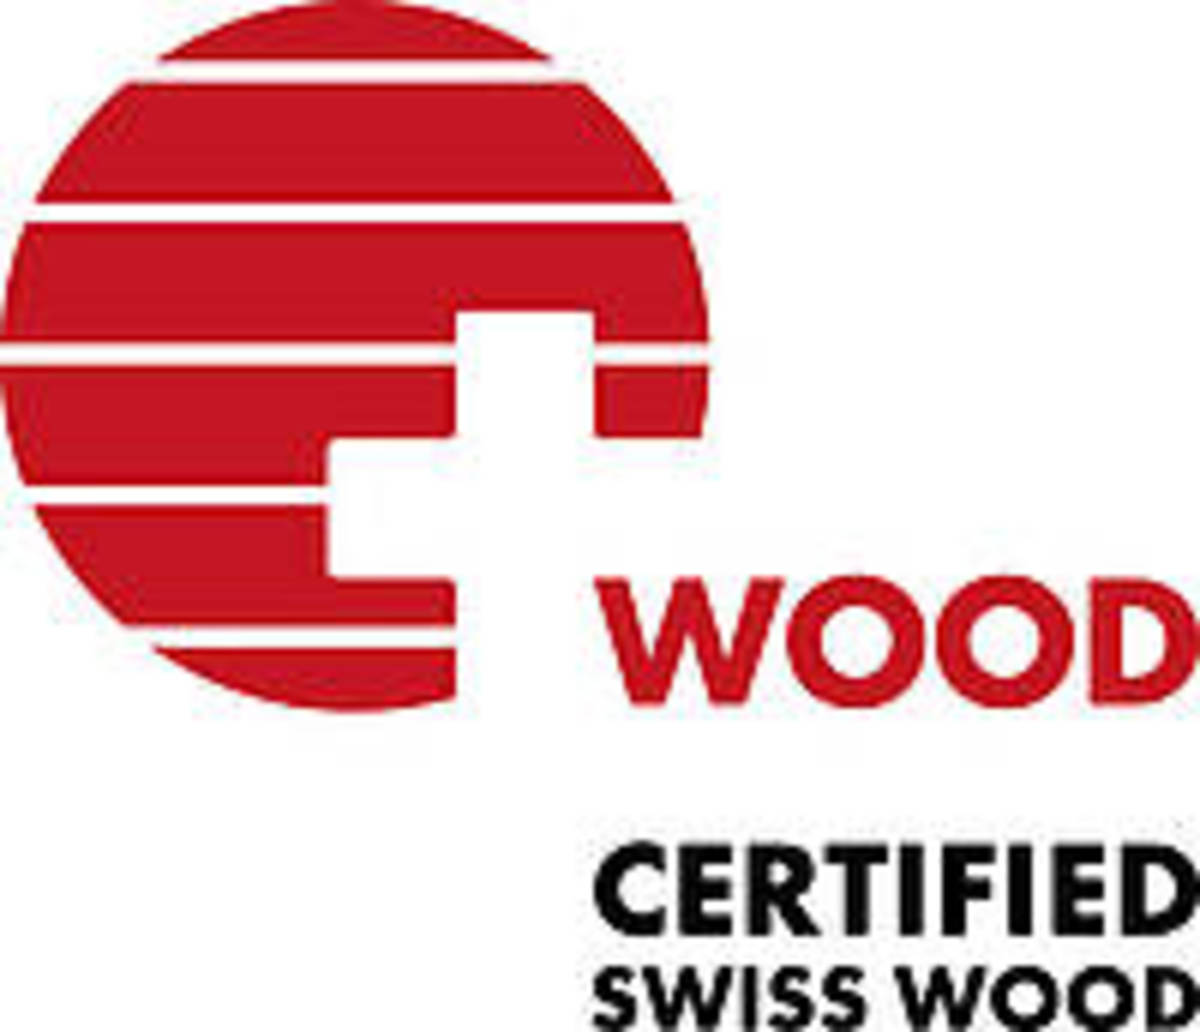 image of wood certified logo